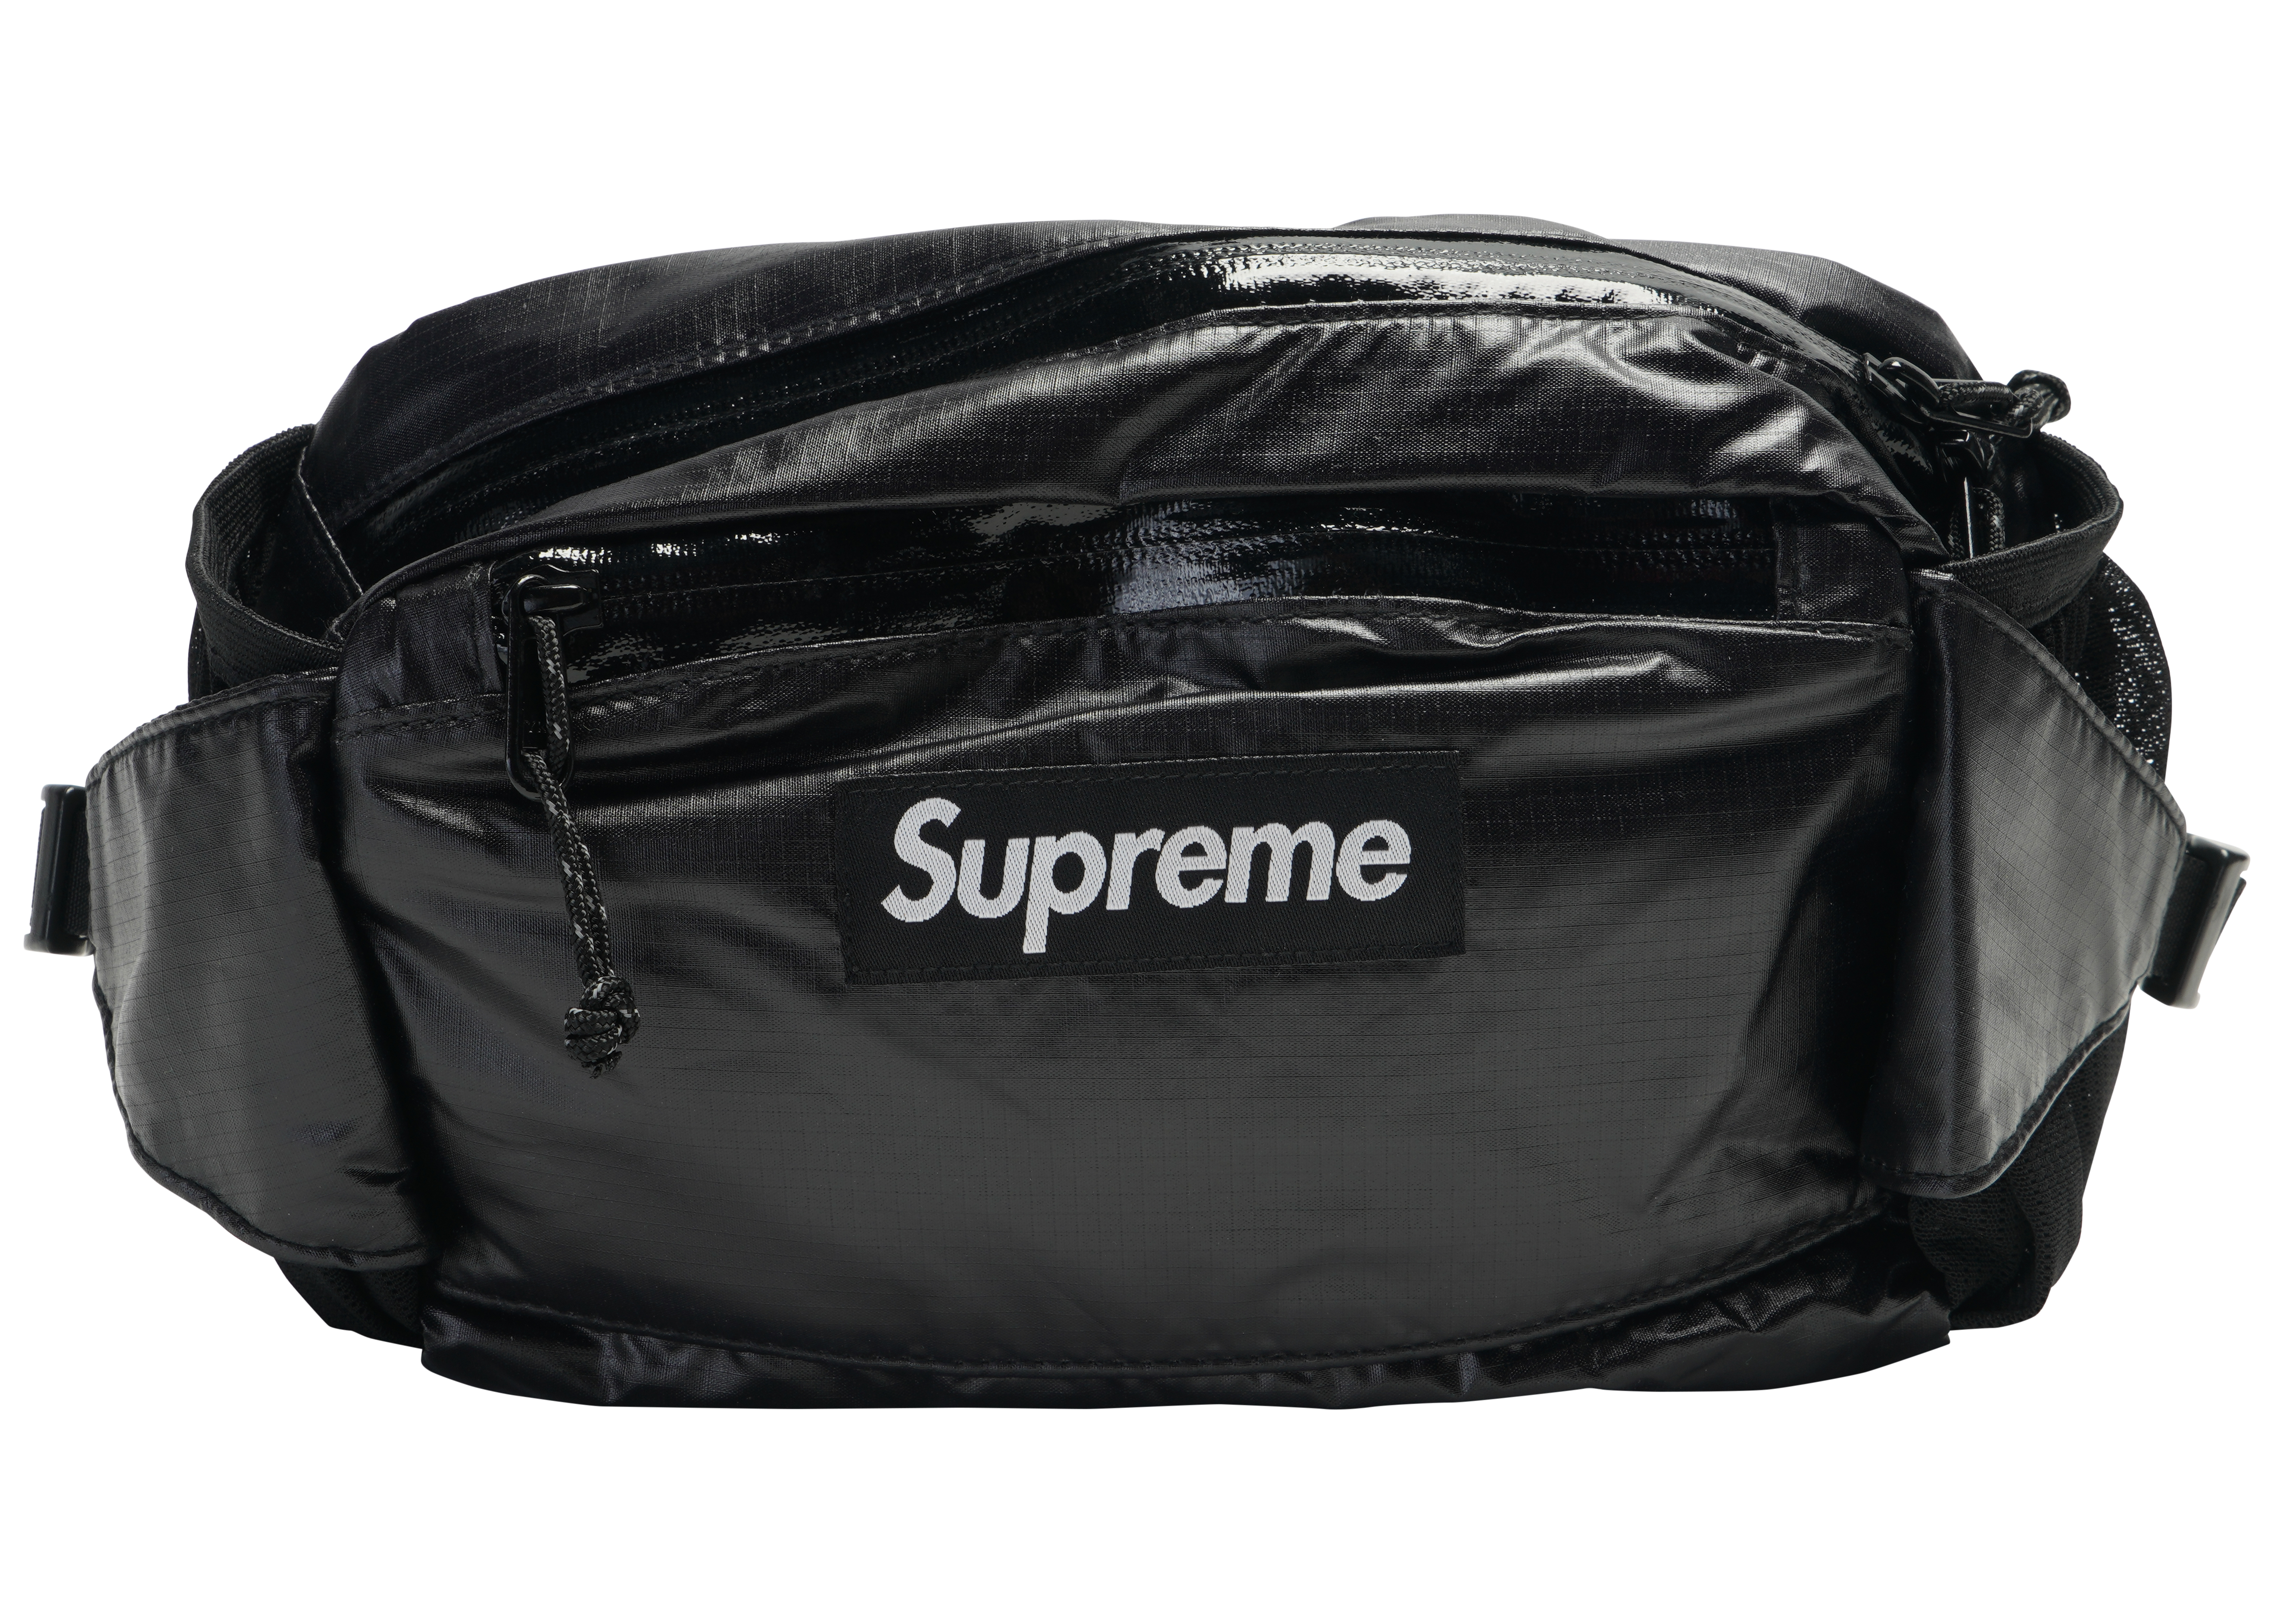 supreme fanny pack